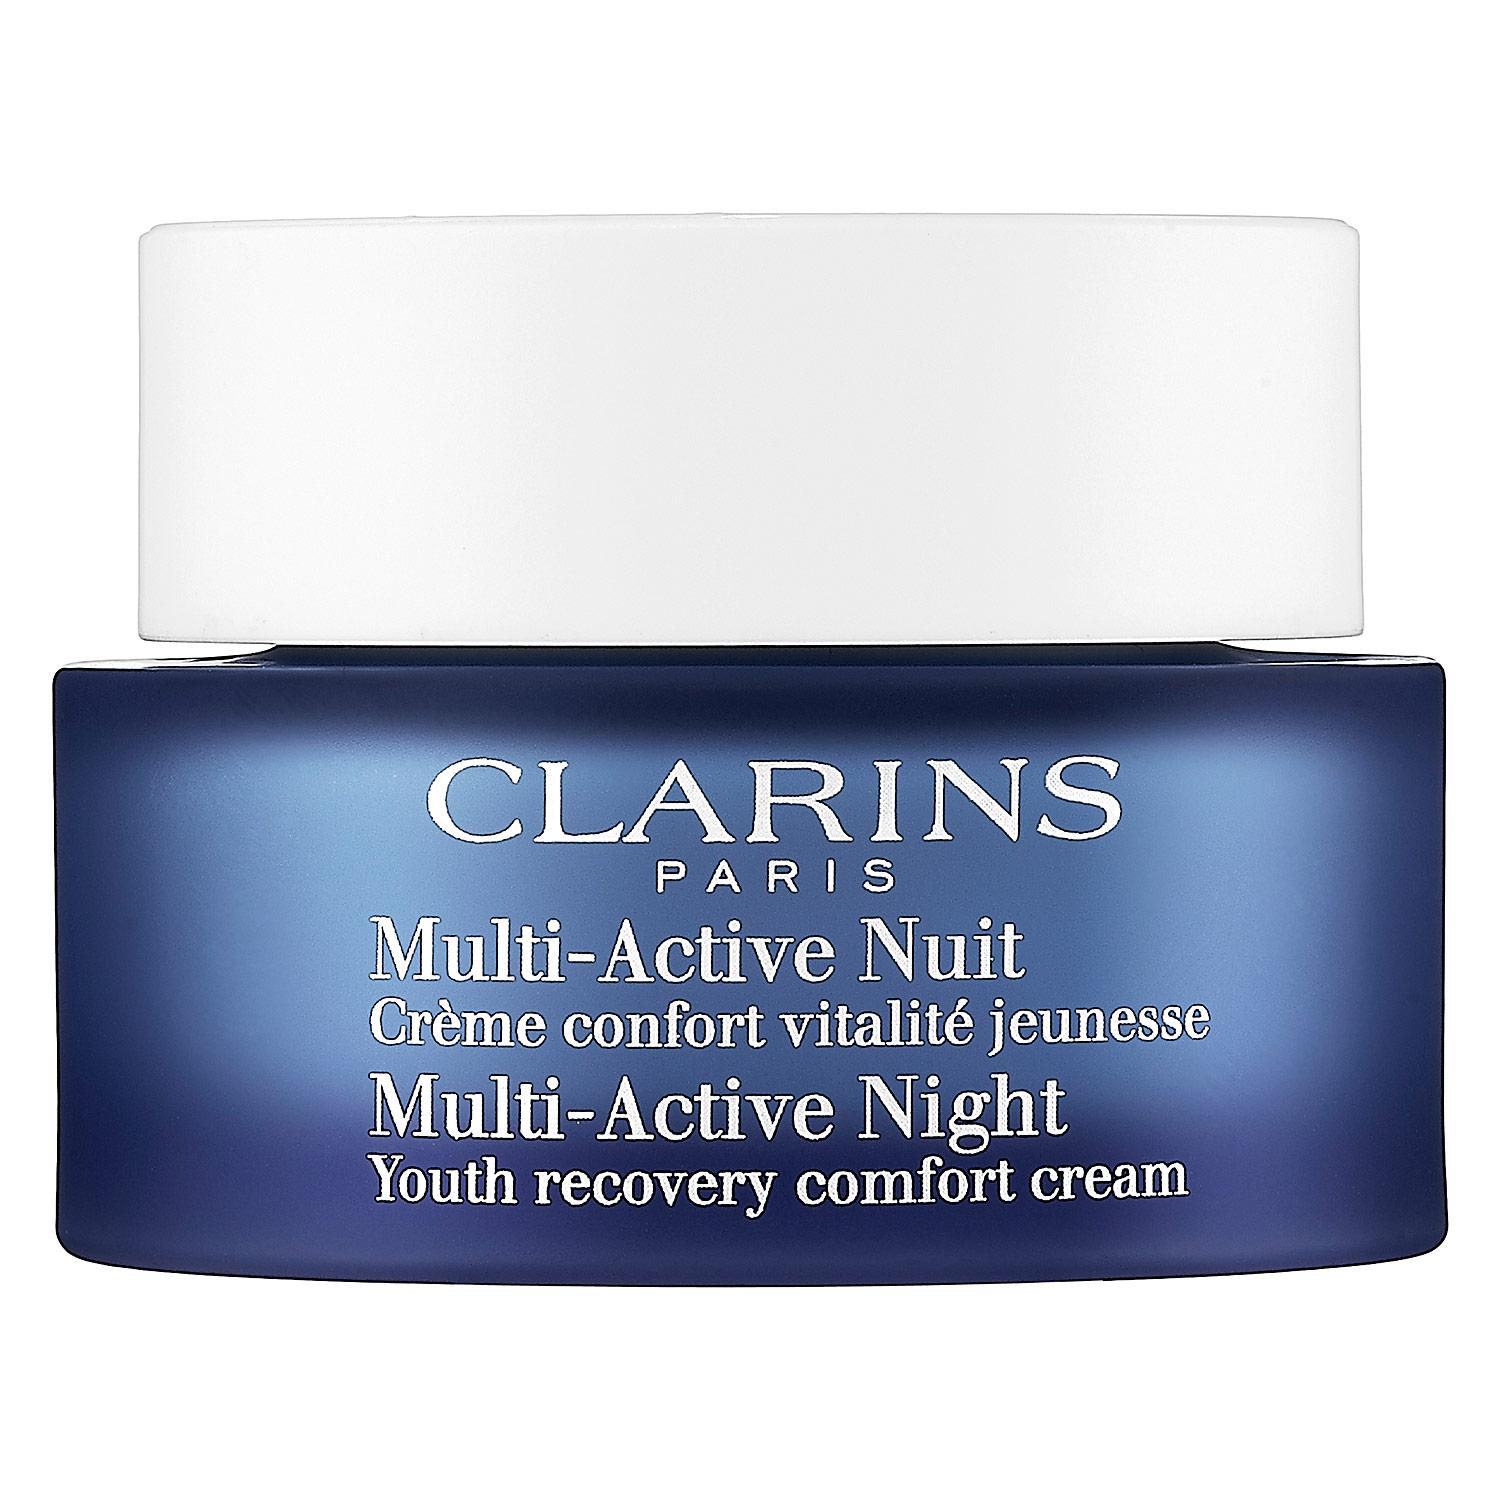 Multi-Active Night Youth Recovery Comfort Cream for Normal to Dry Skin